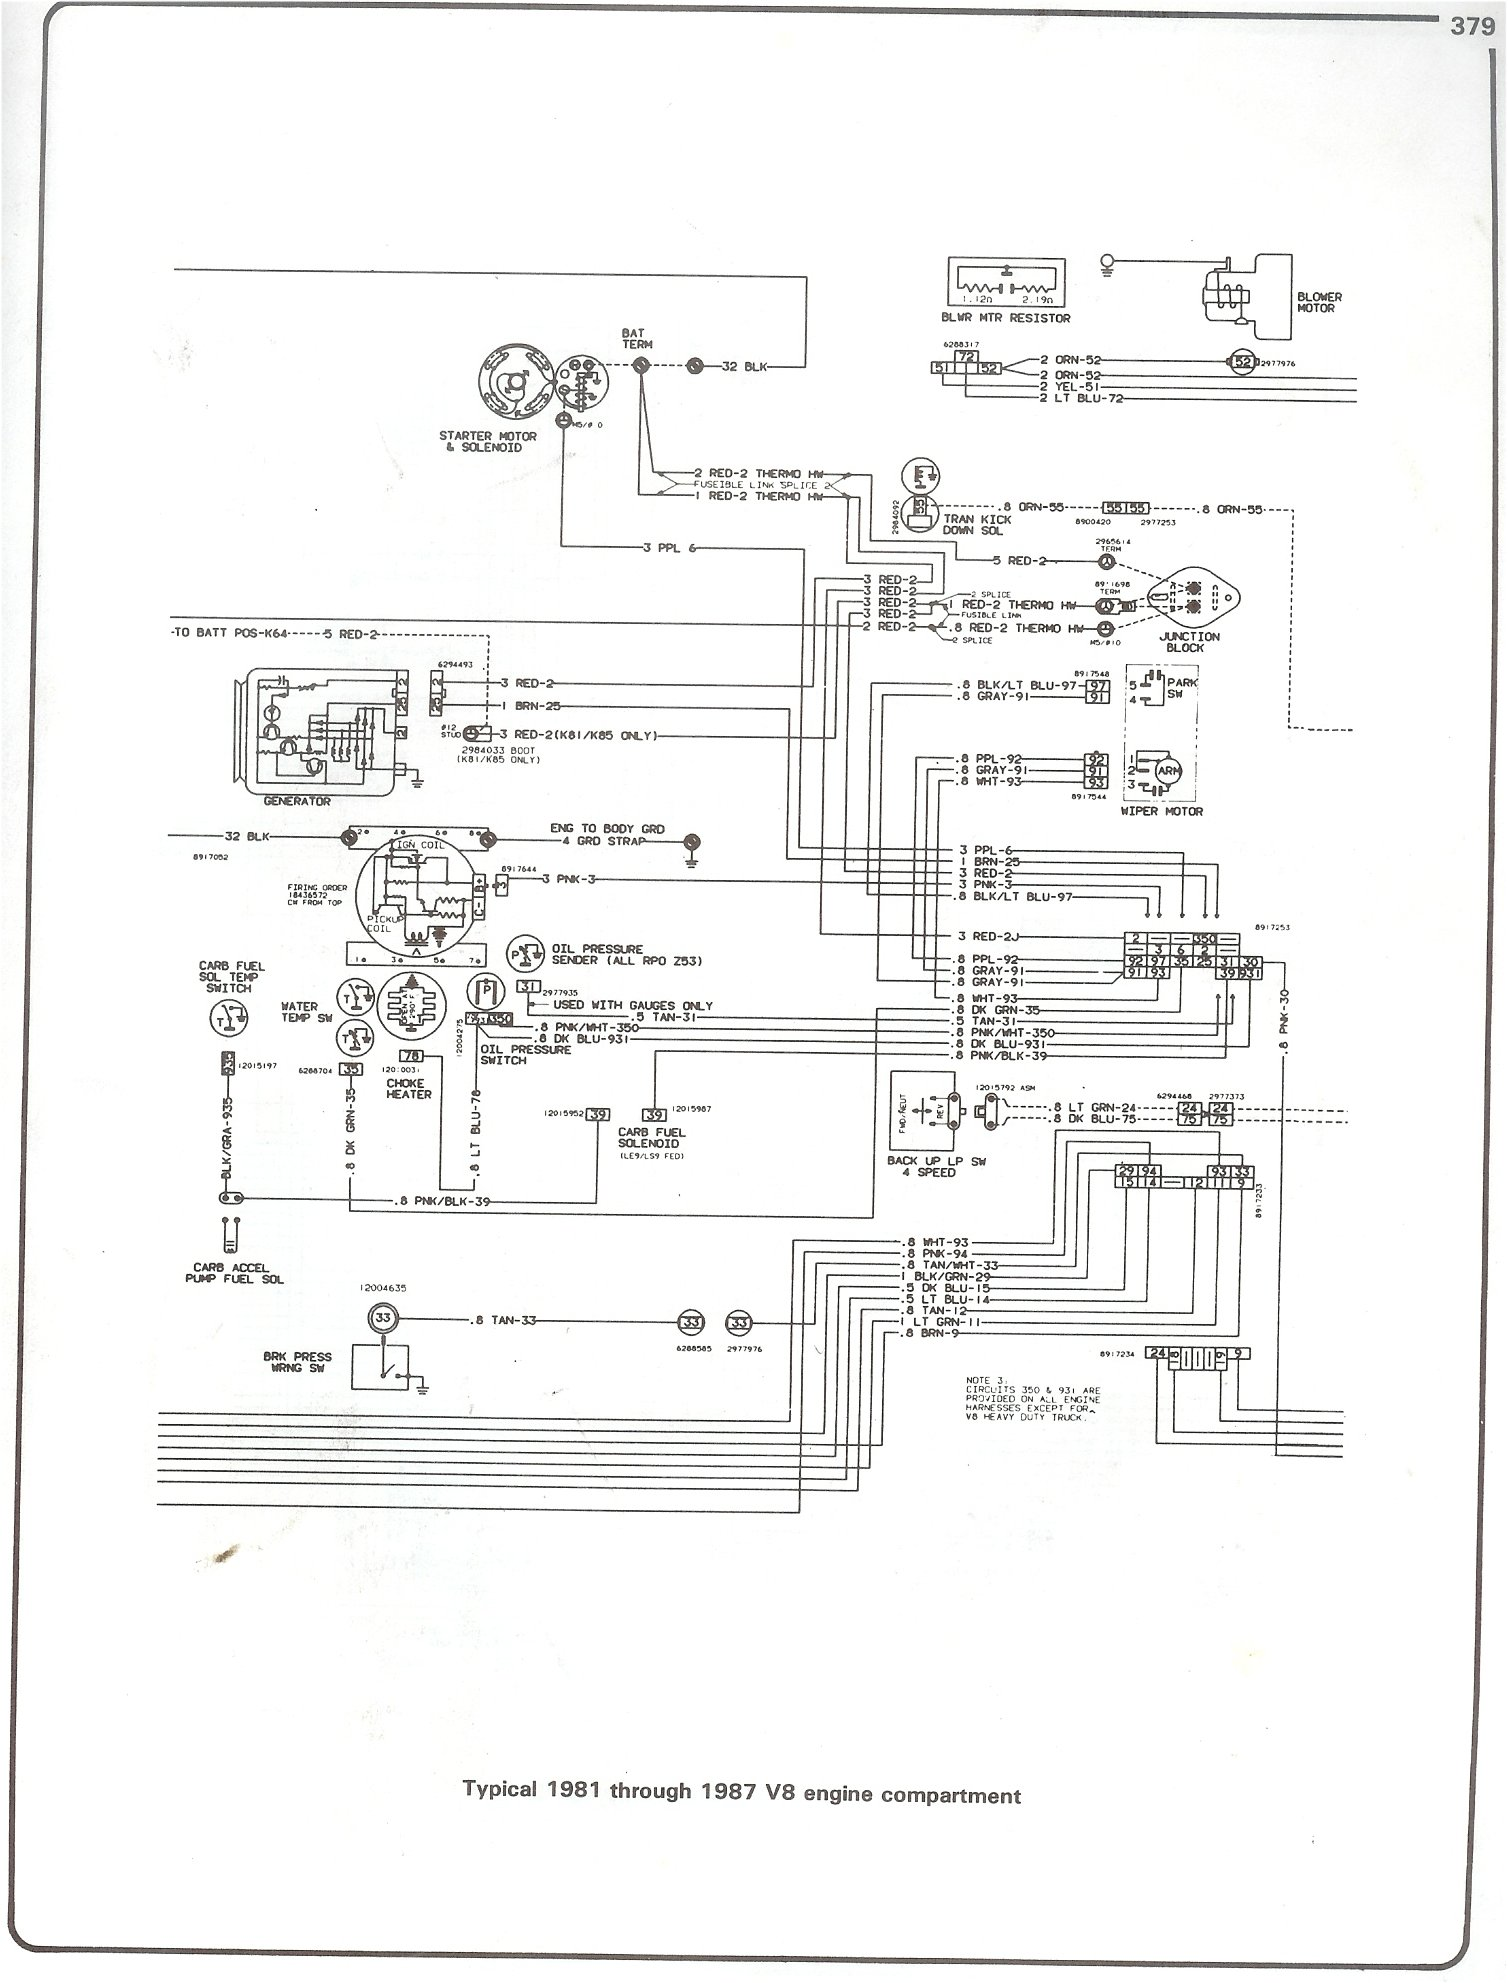 complete 73 87 wiring diagrams rh forum 73 87chevytrucks com 1996 Chevy Blazer Wiring Diagram 1996 Chevy Blazer Wiring Diagram